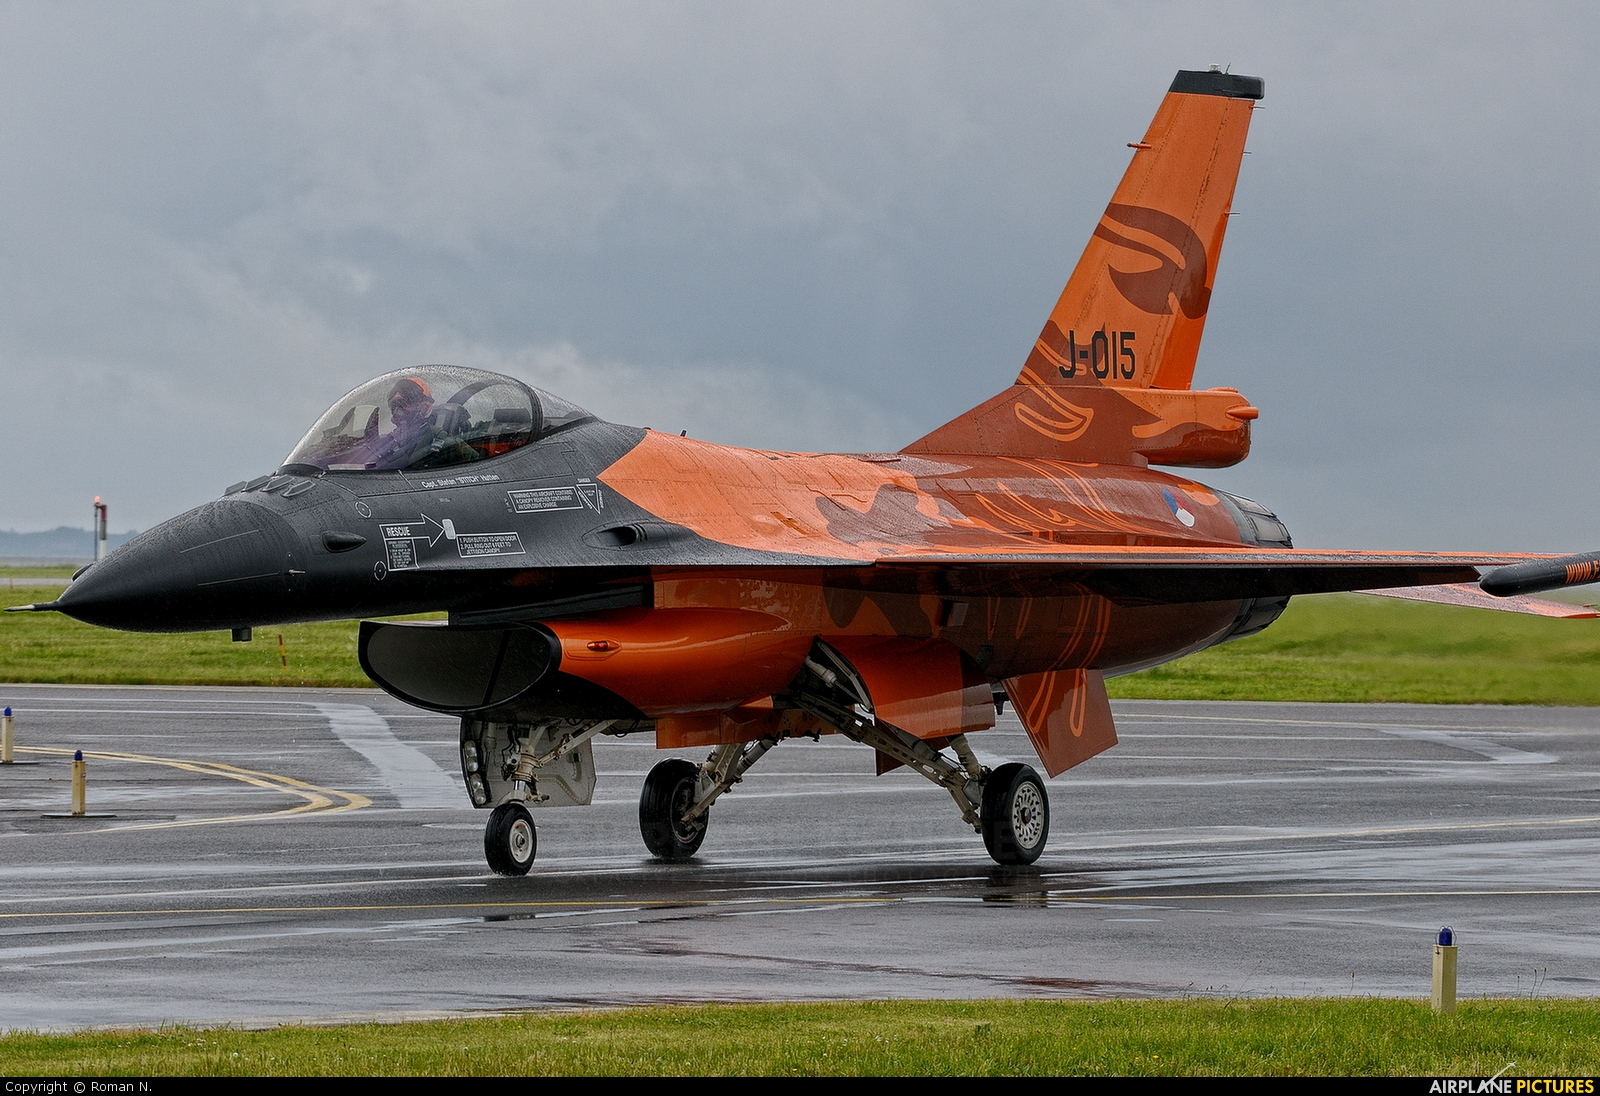 Netherlands - Air Force J-015 aircraft at Aalborg